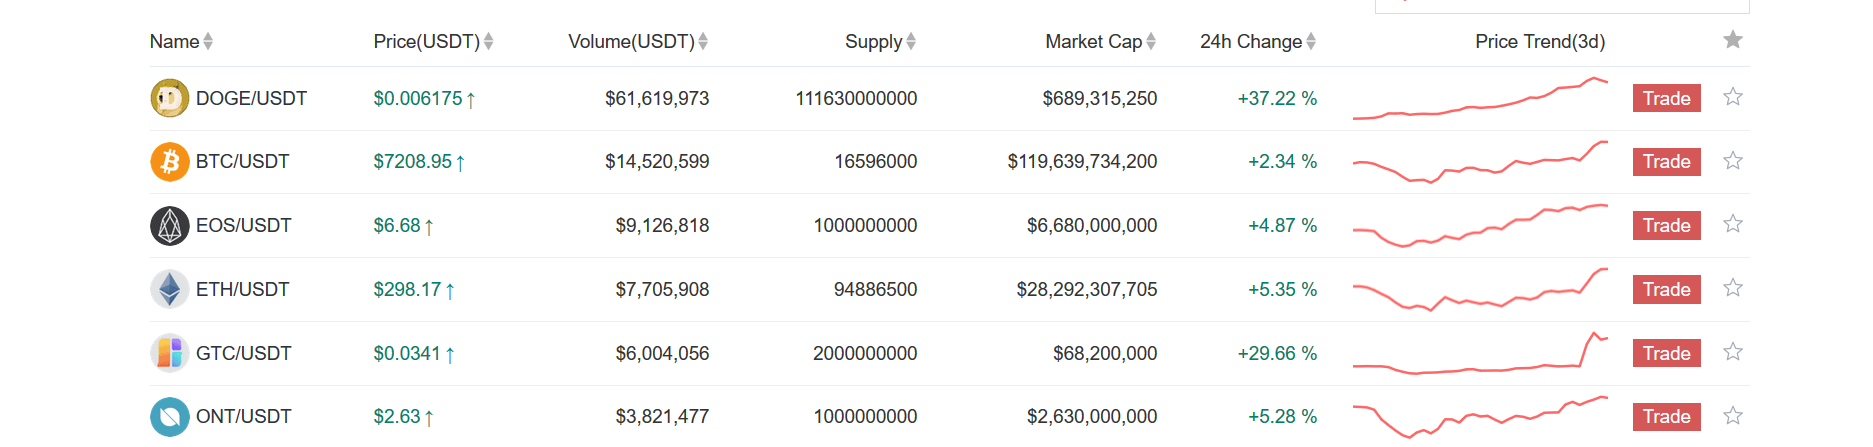 Top trading pairs on Gate.io | Source: Gate.io